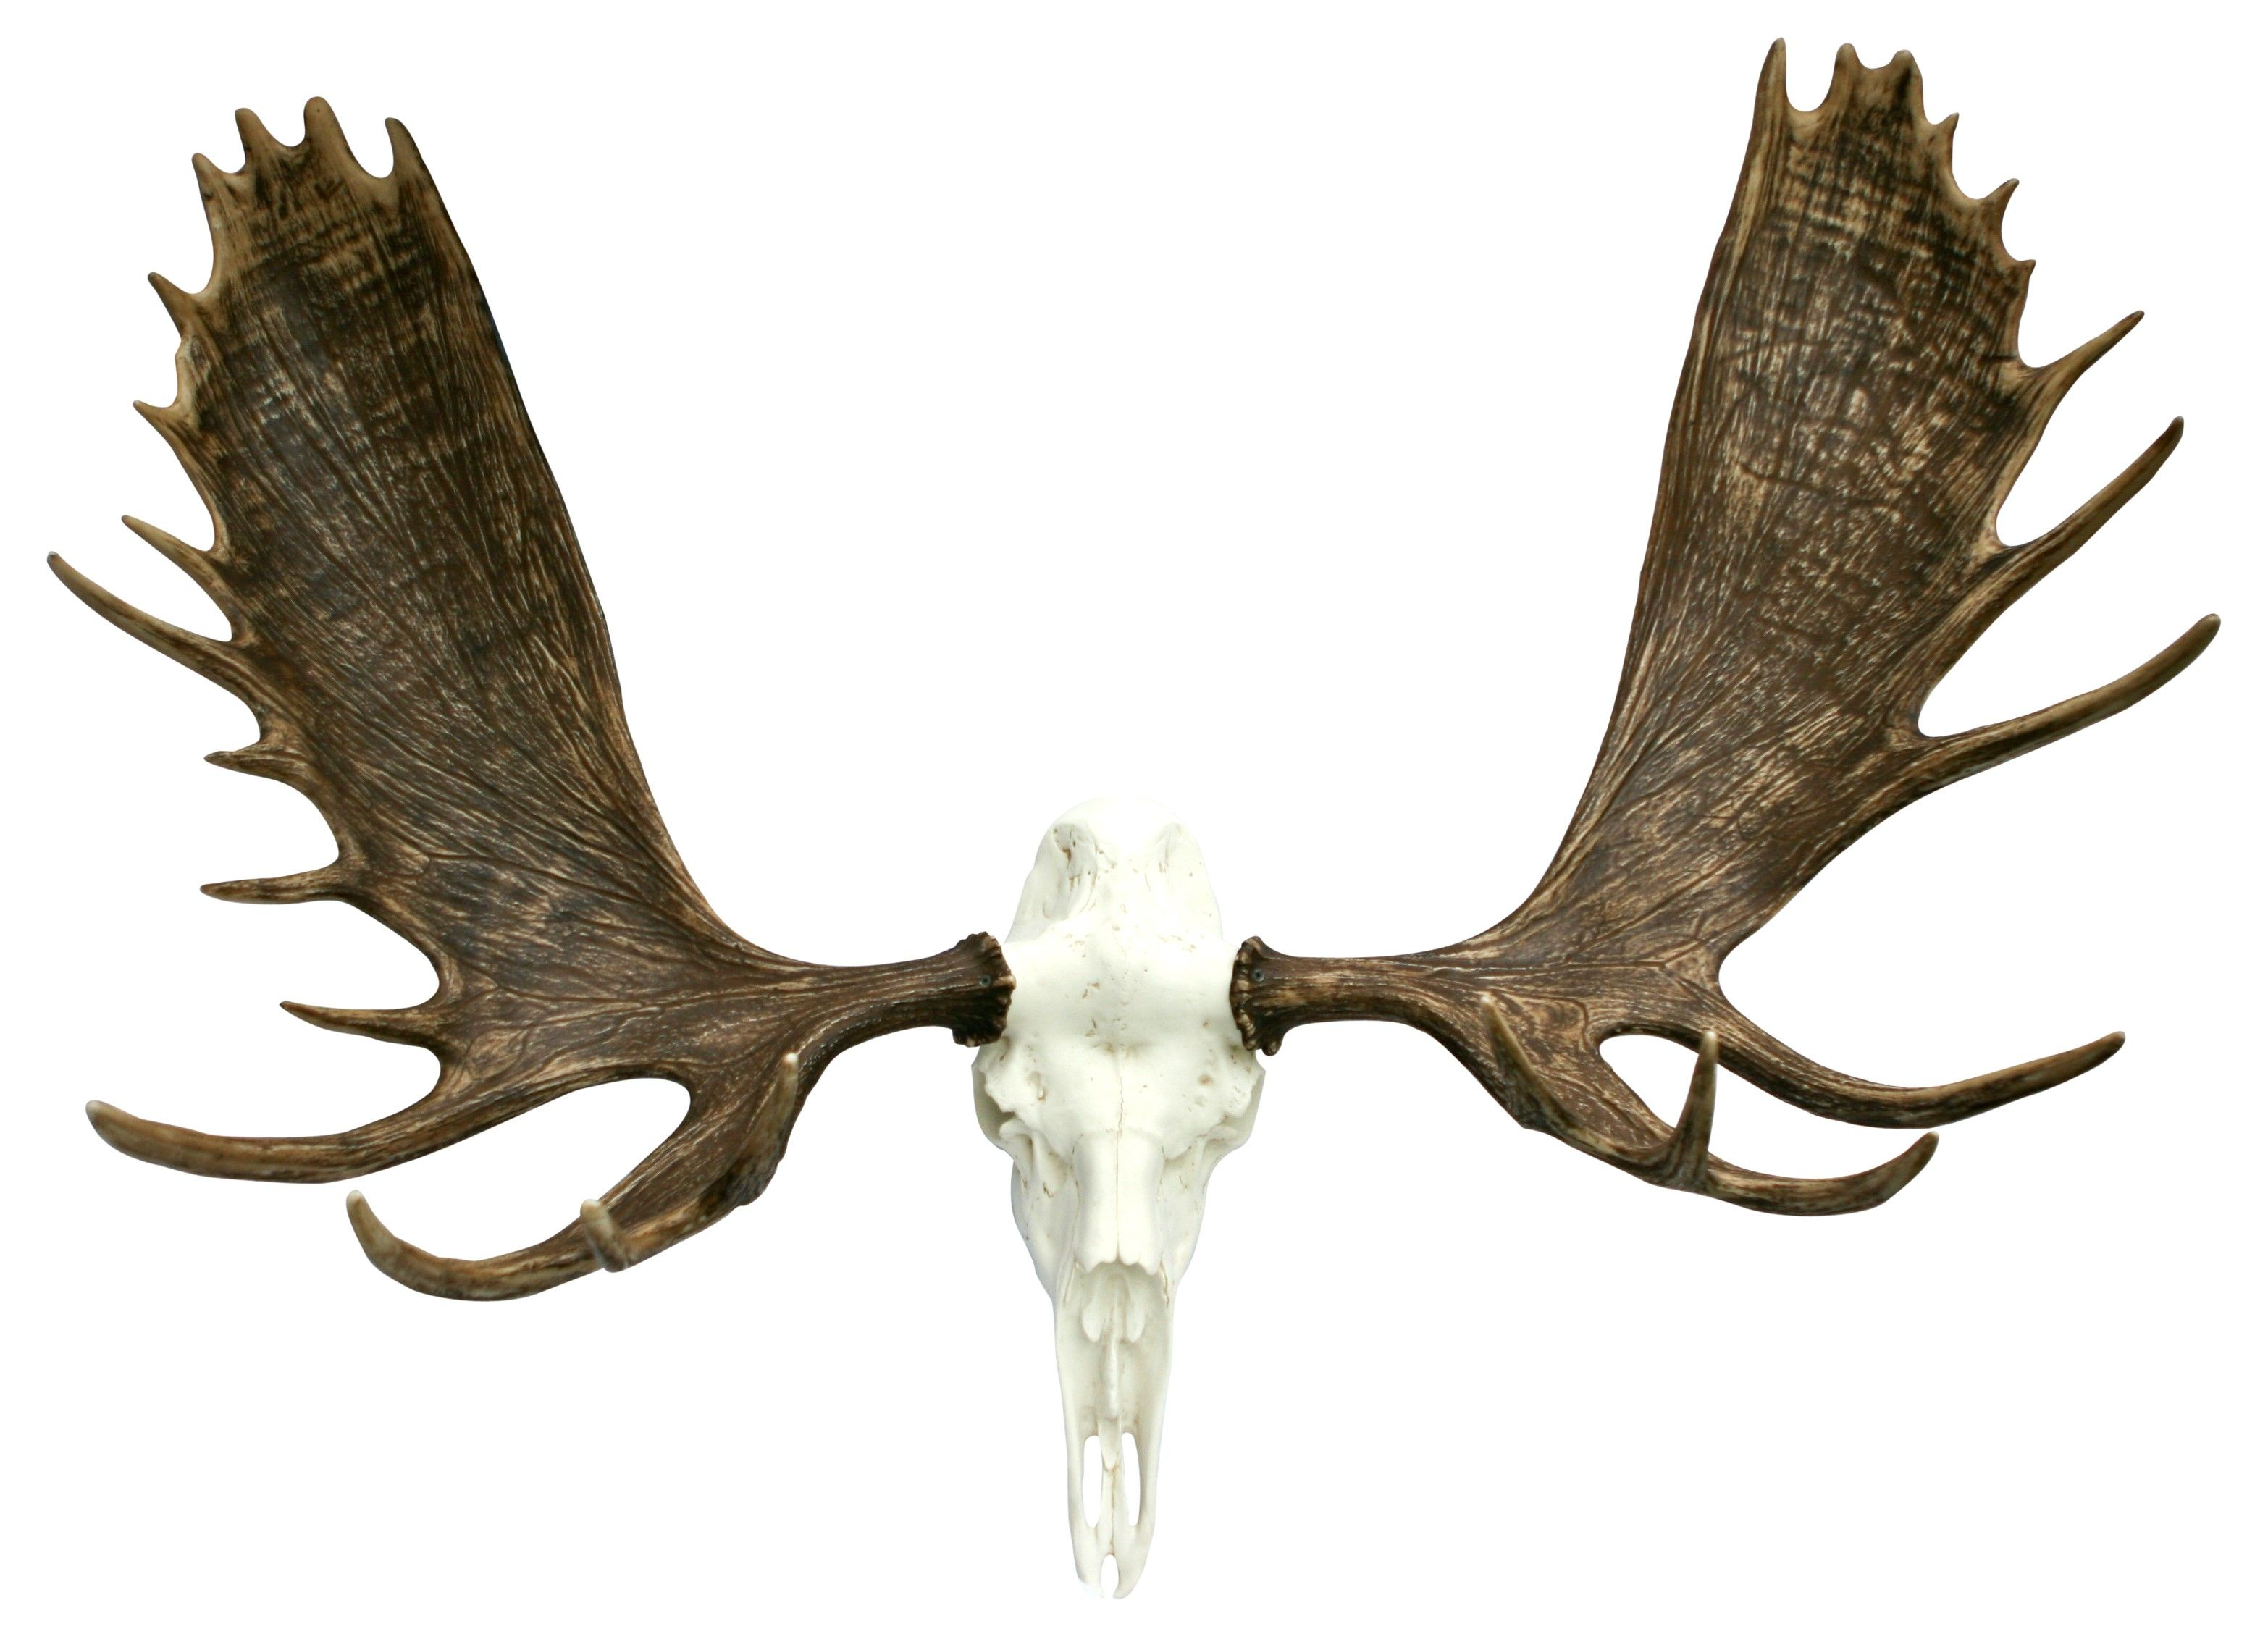 The European Alaskan Moose Mount Is 60 Wide And Has An Overall Height Of 52 Tall Each Mount Requires Assembly And Inc Alaskan Moose Moose Skull Moose Tattoo